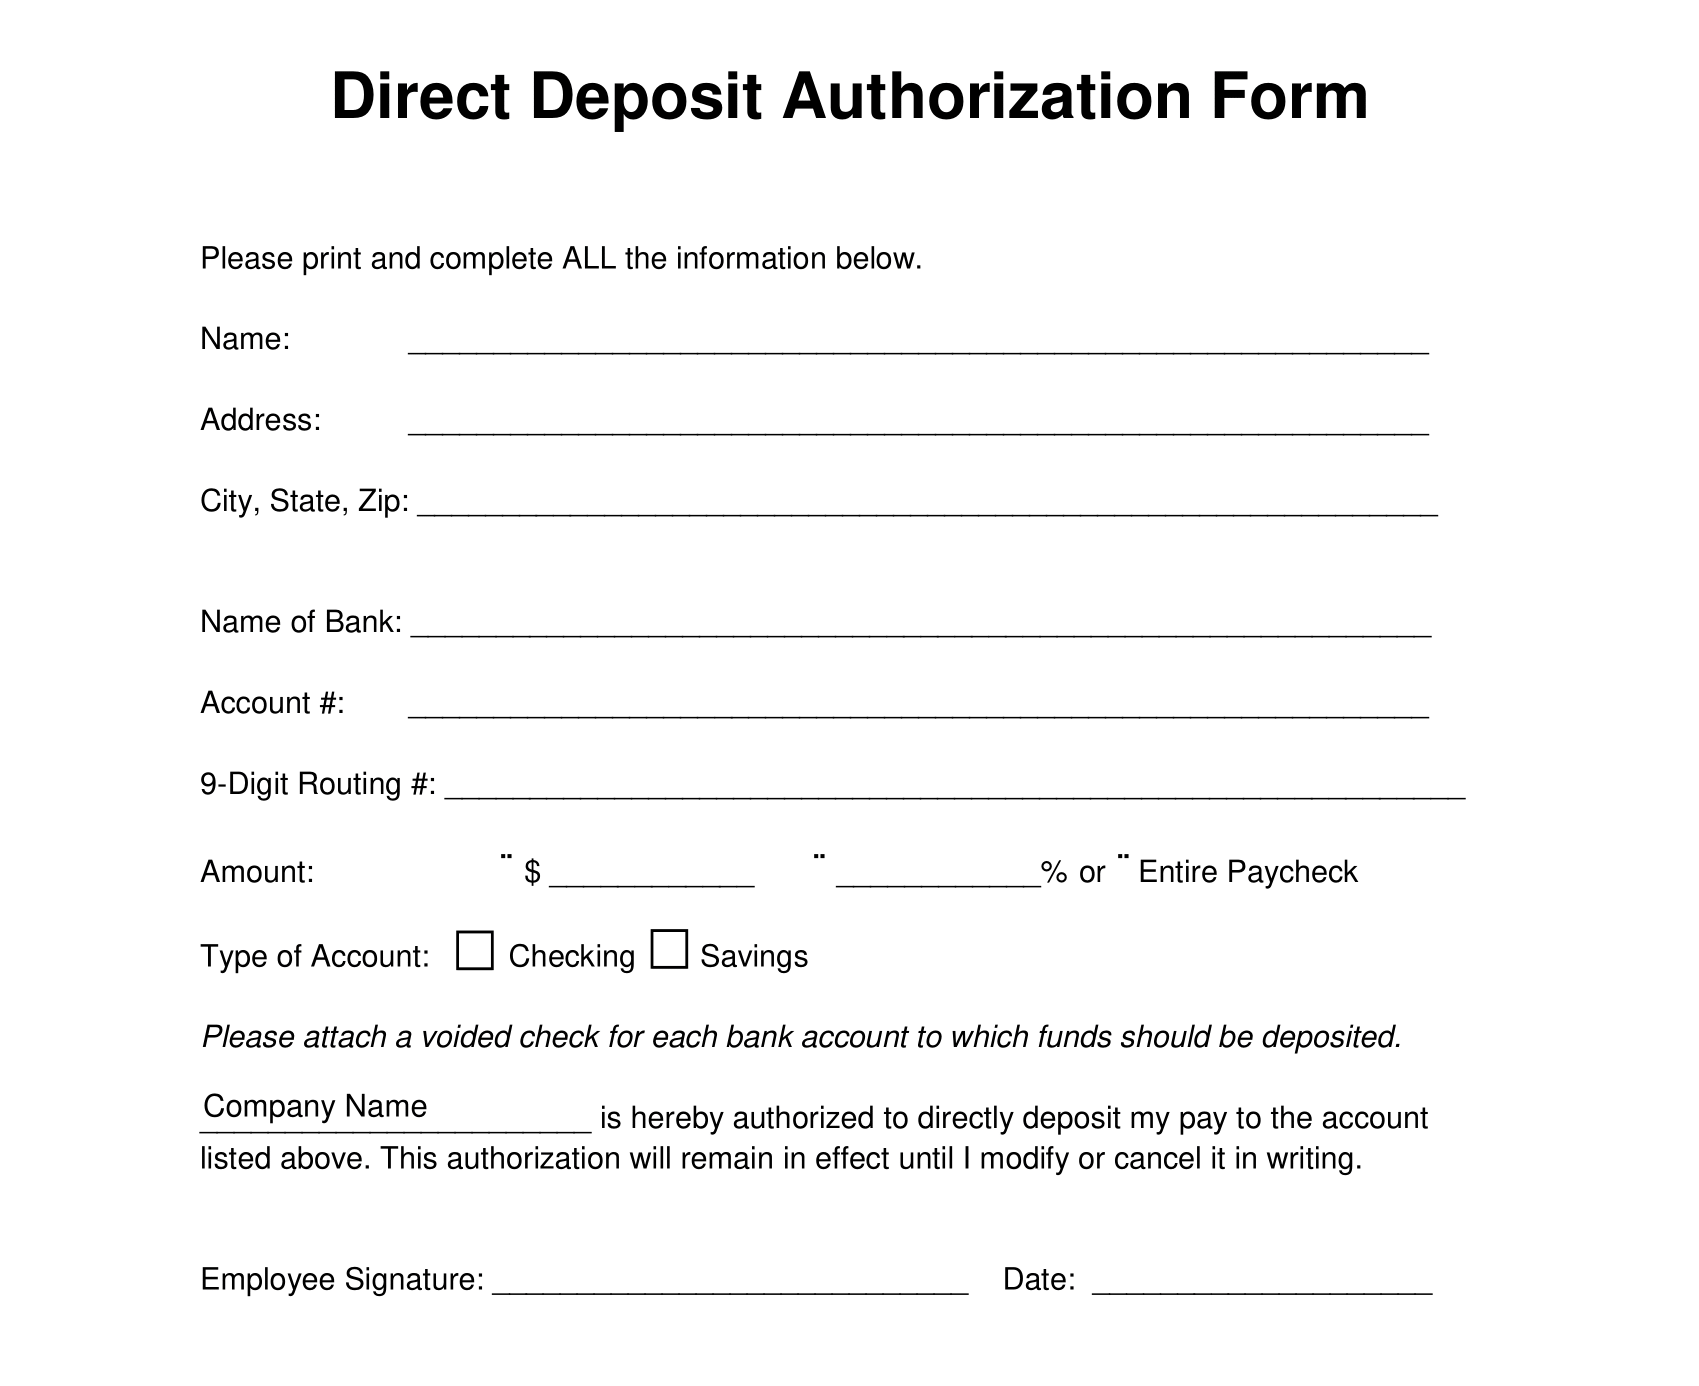 example of a direct deposit authorization form